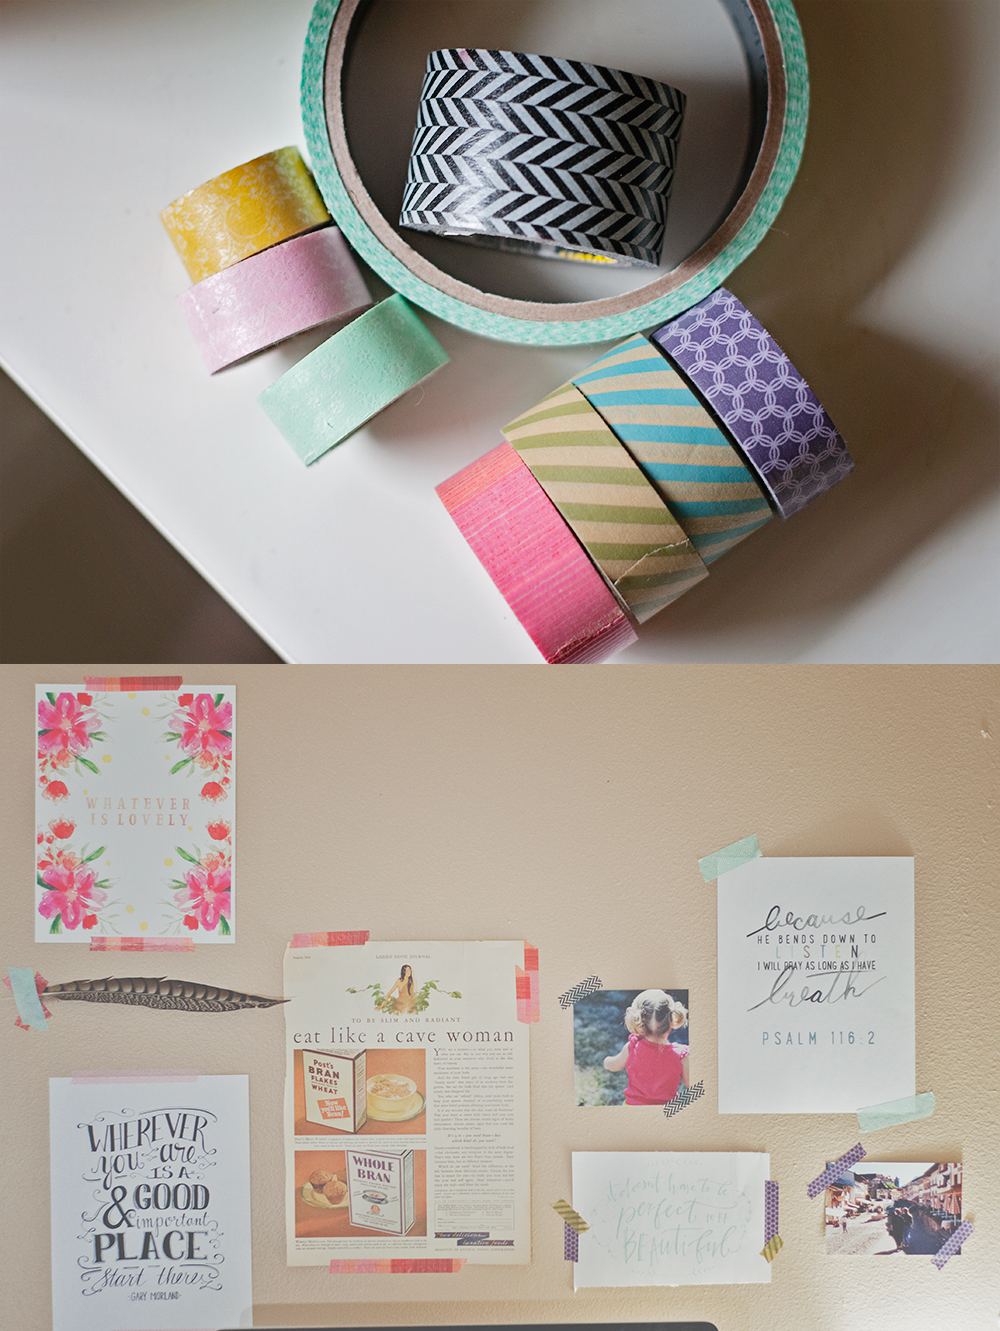 31 Days of Open Letters: A Blog Series at SarahSandel.com // An Open Letter to Washi Tape